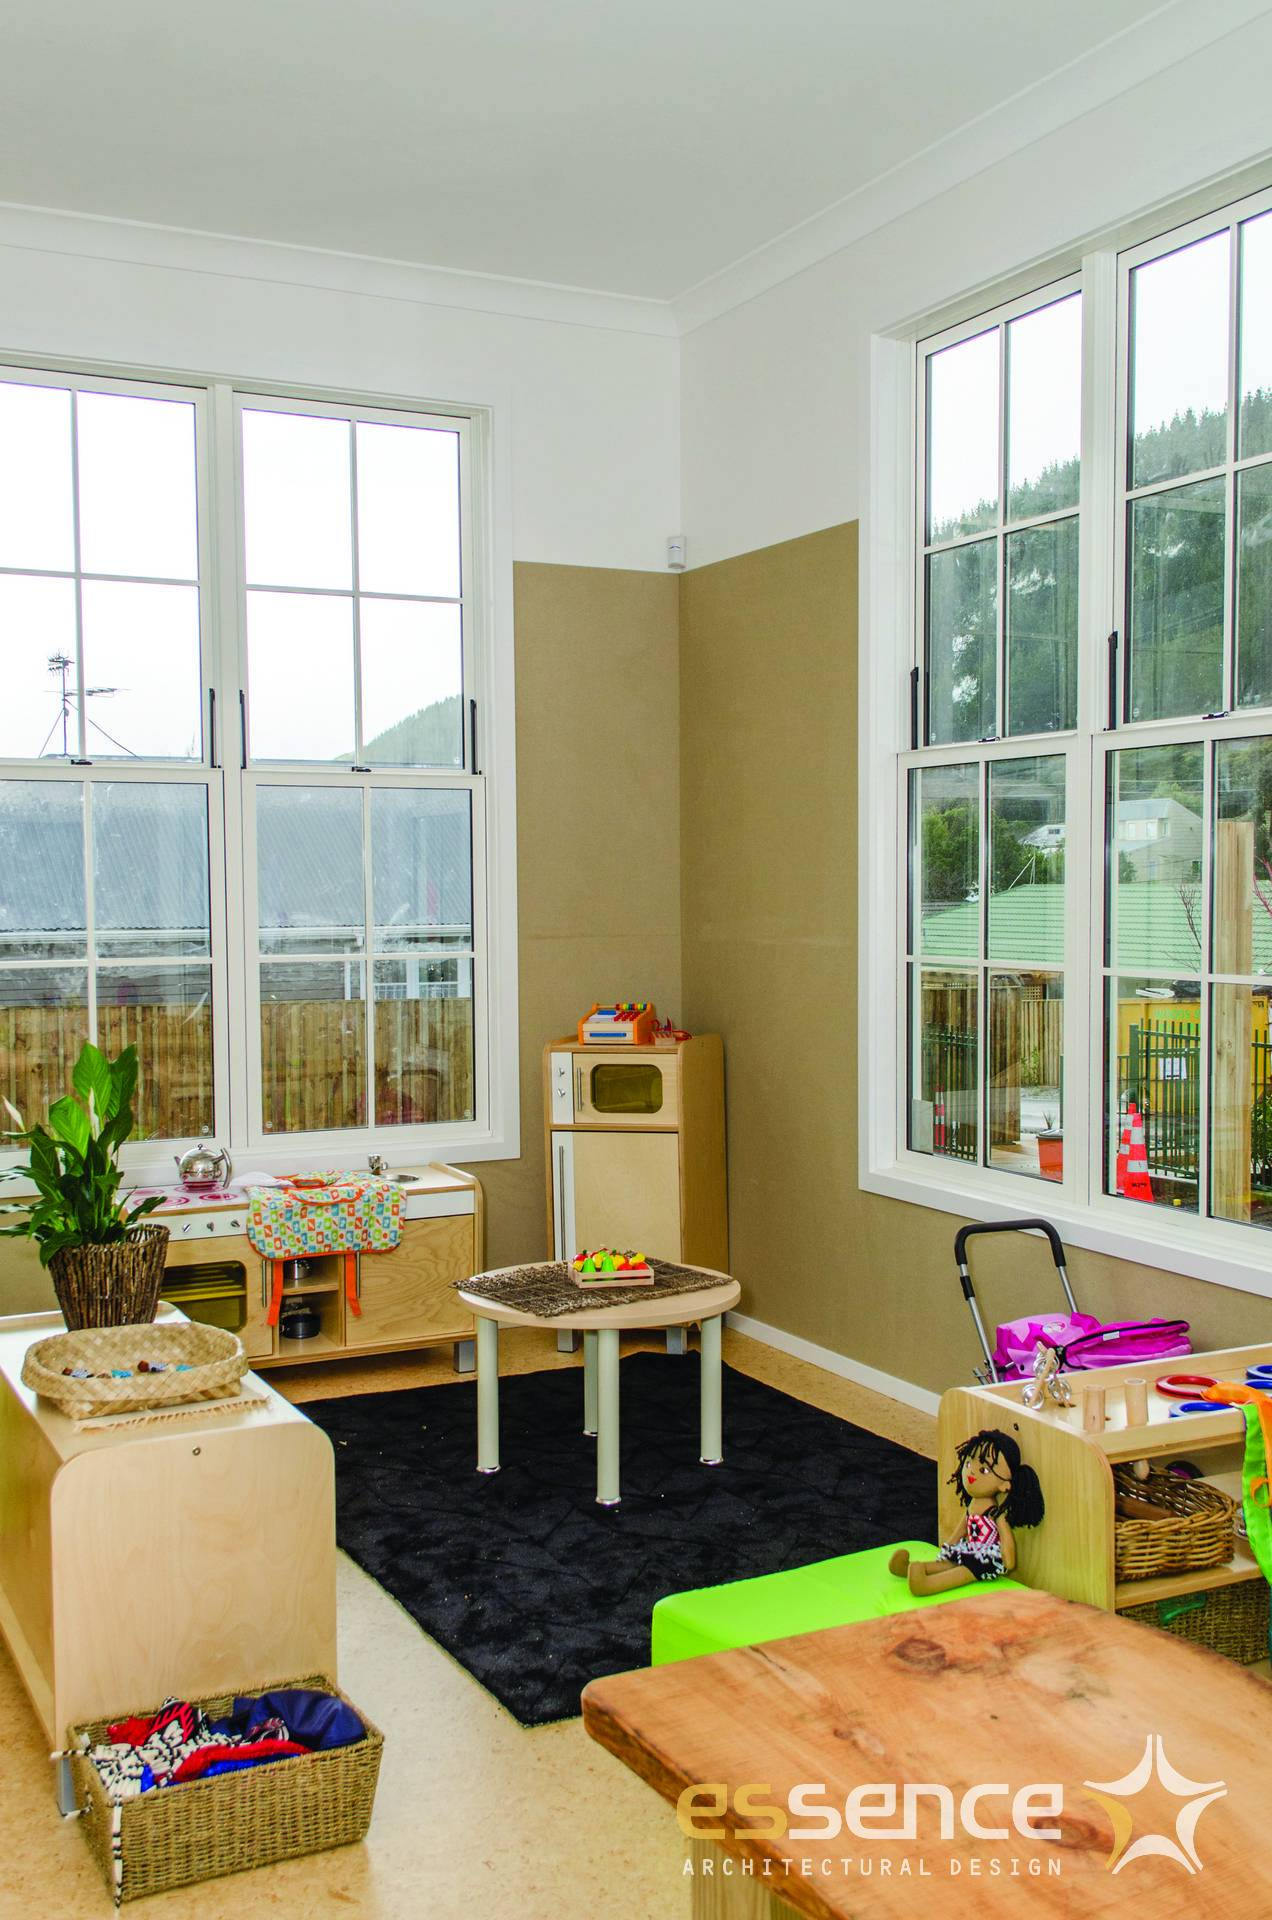 Interior childrens area for older ages